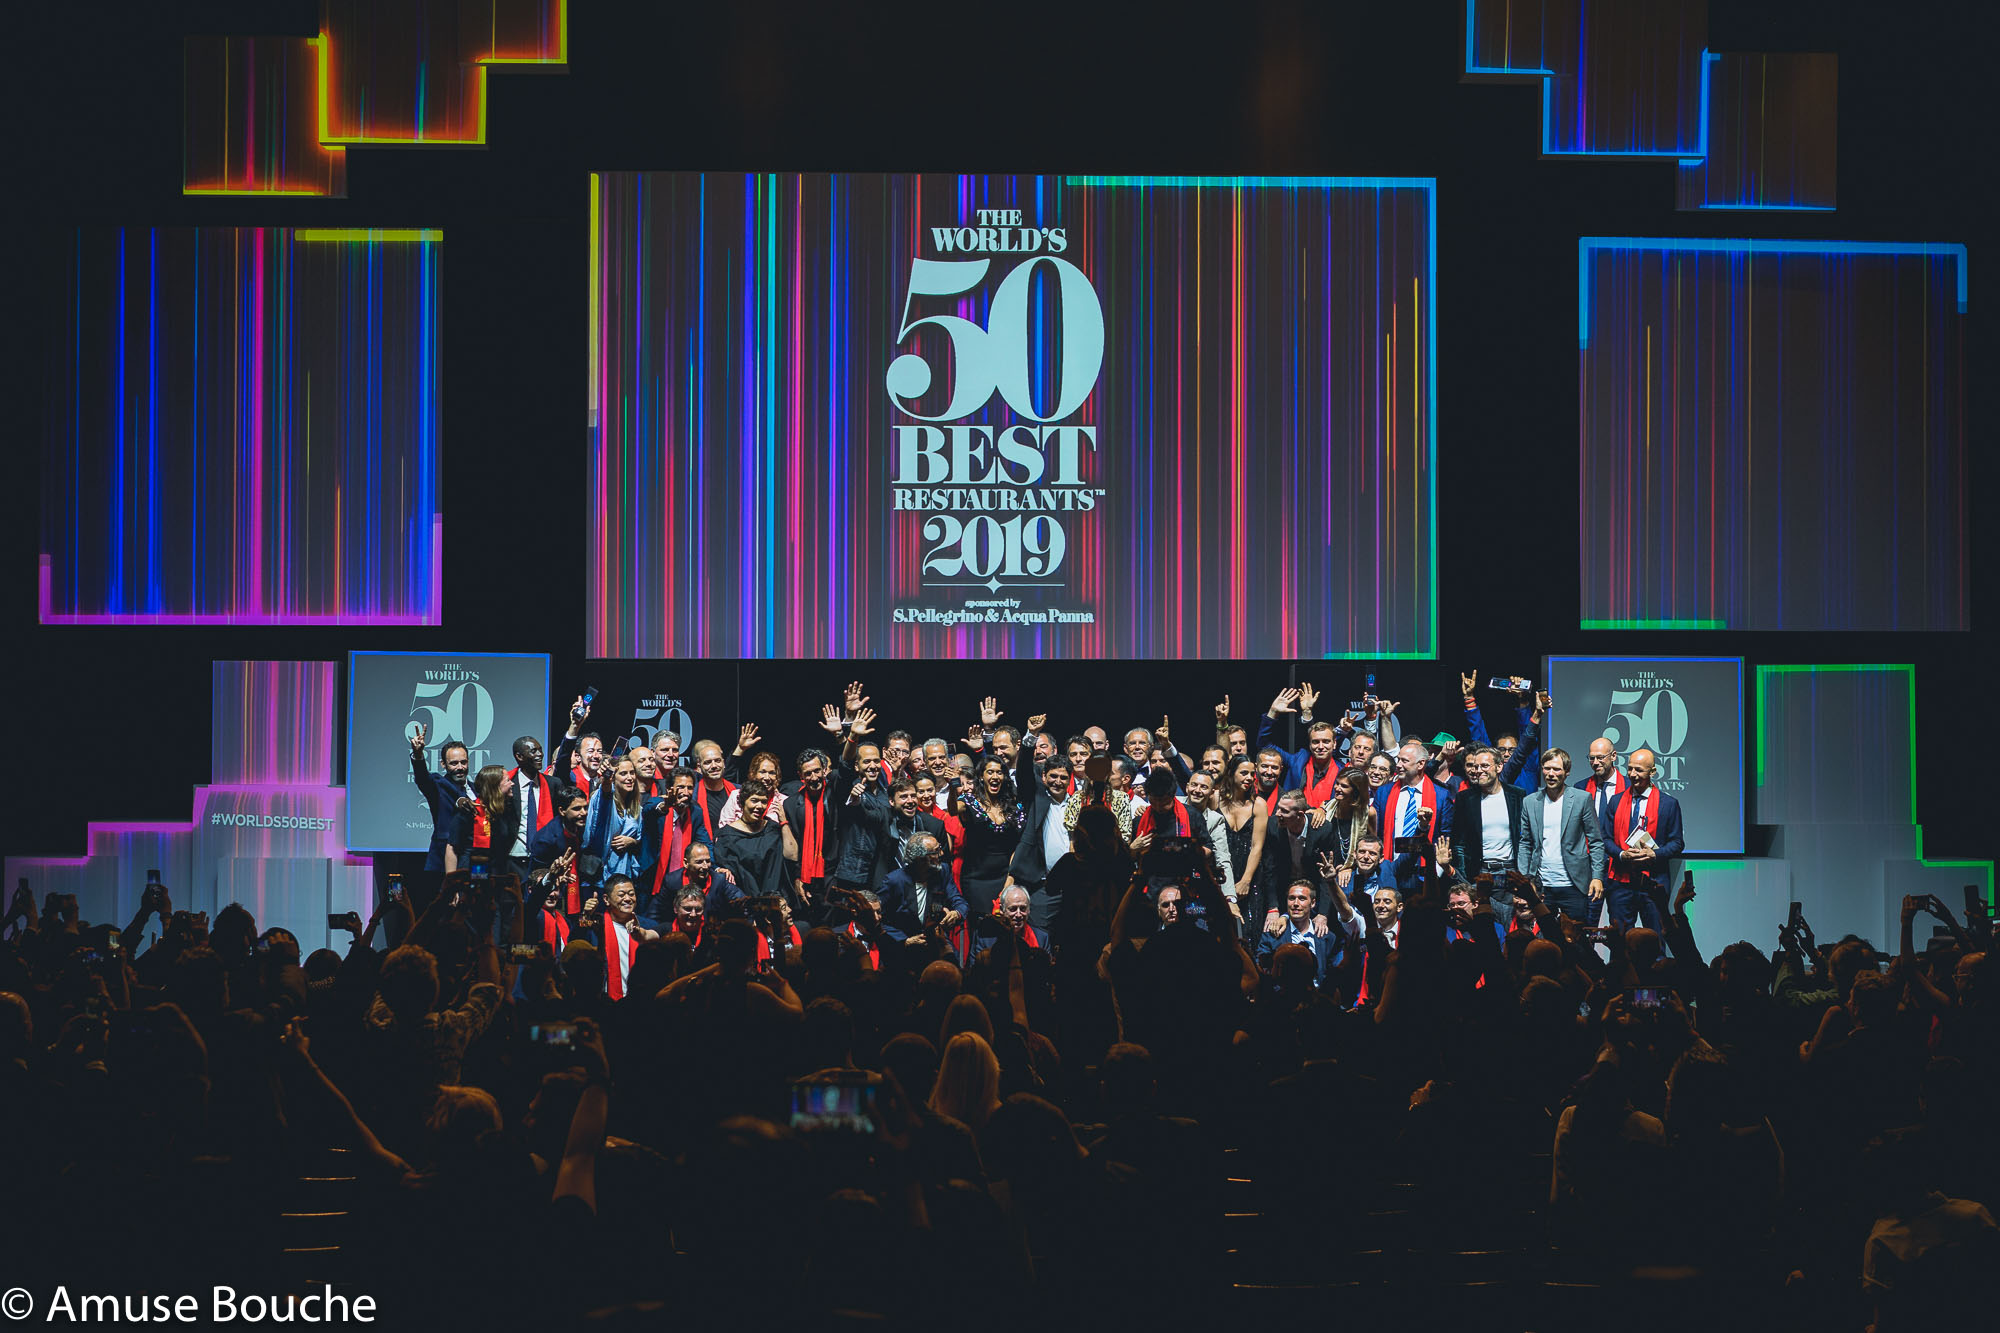 50 Best Restaurants Gala 2019 All Star Photo